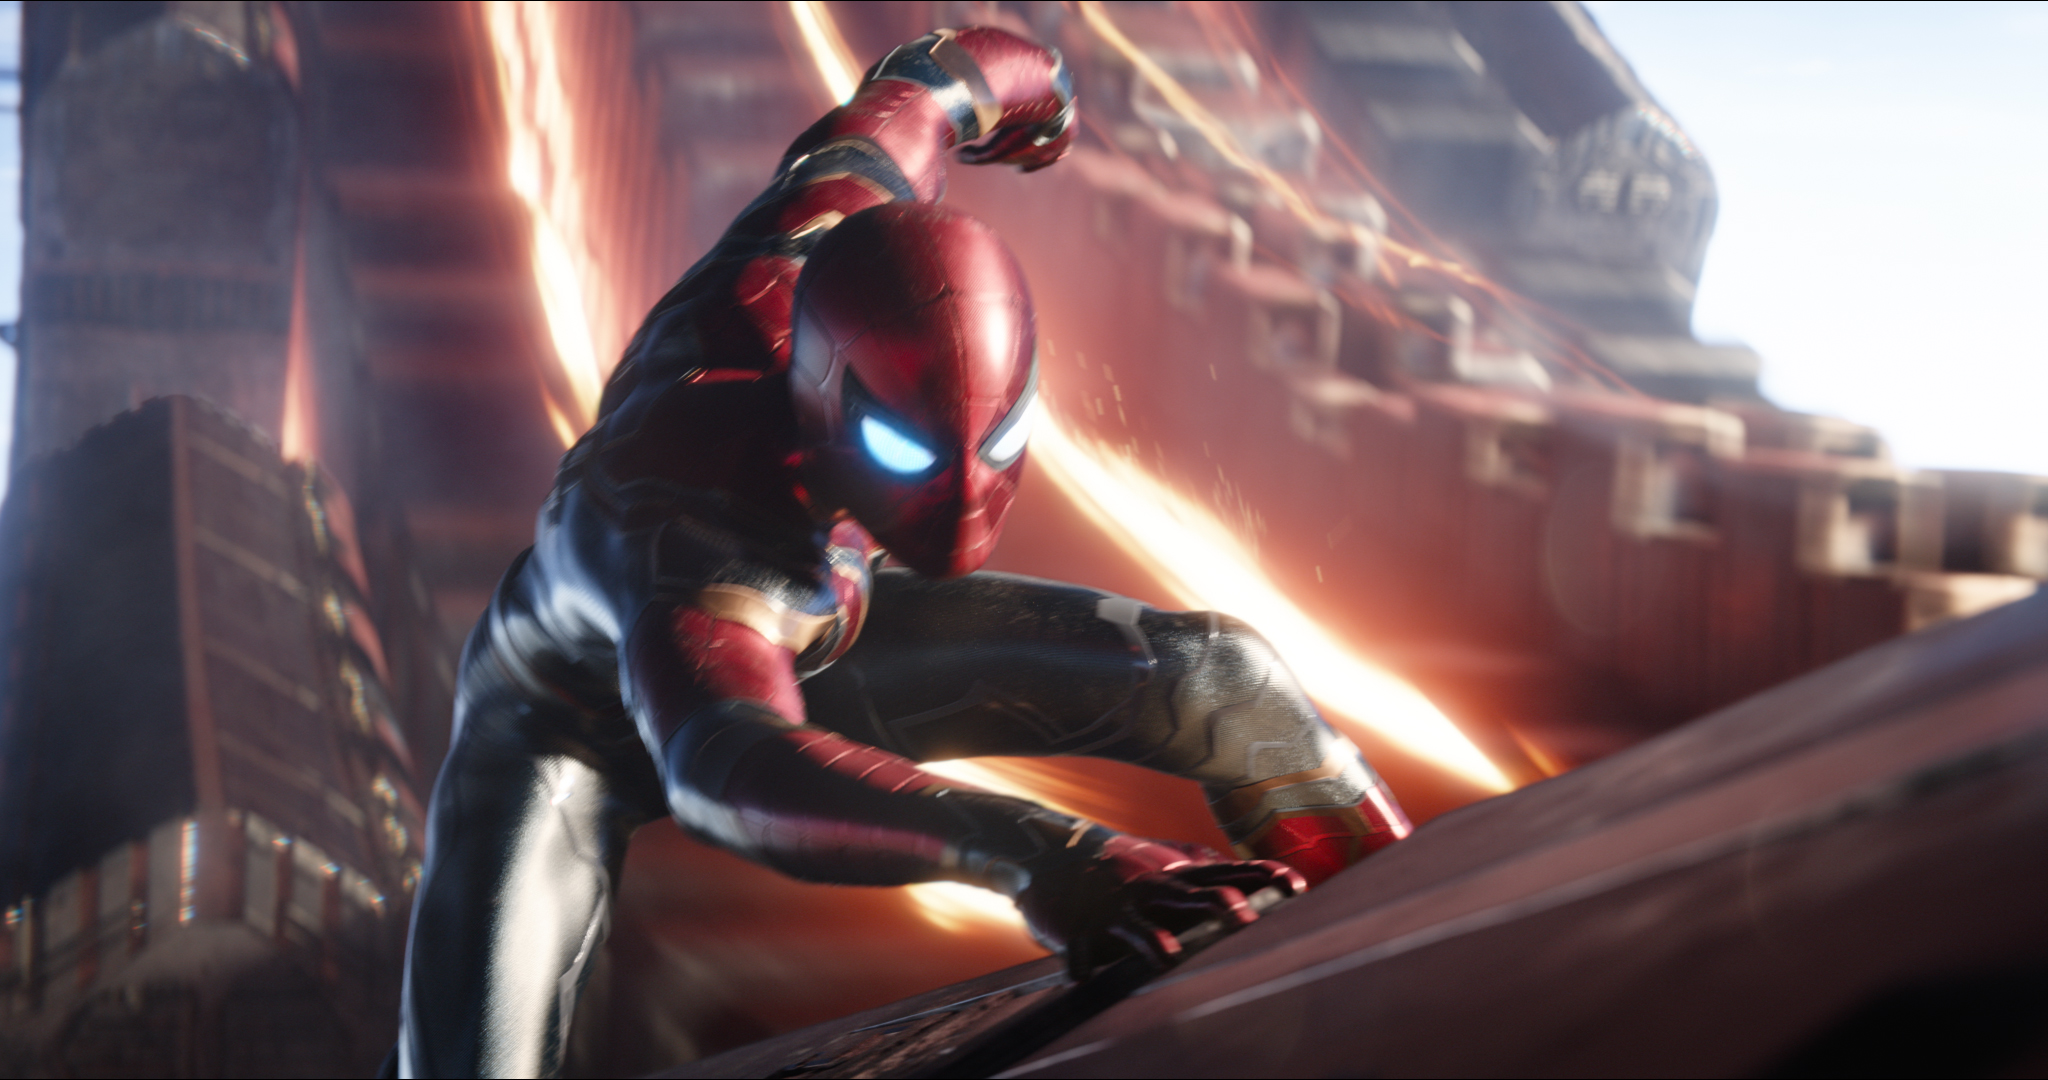 avengers infinity war image spiderman new suit - Avengers: Infinity War - La Reseña Cinergetica (Spoilers) y Análisis